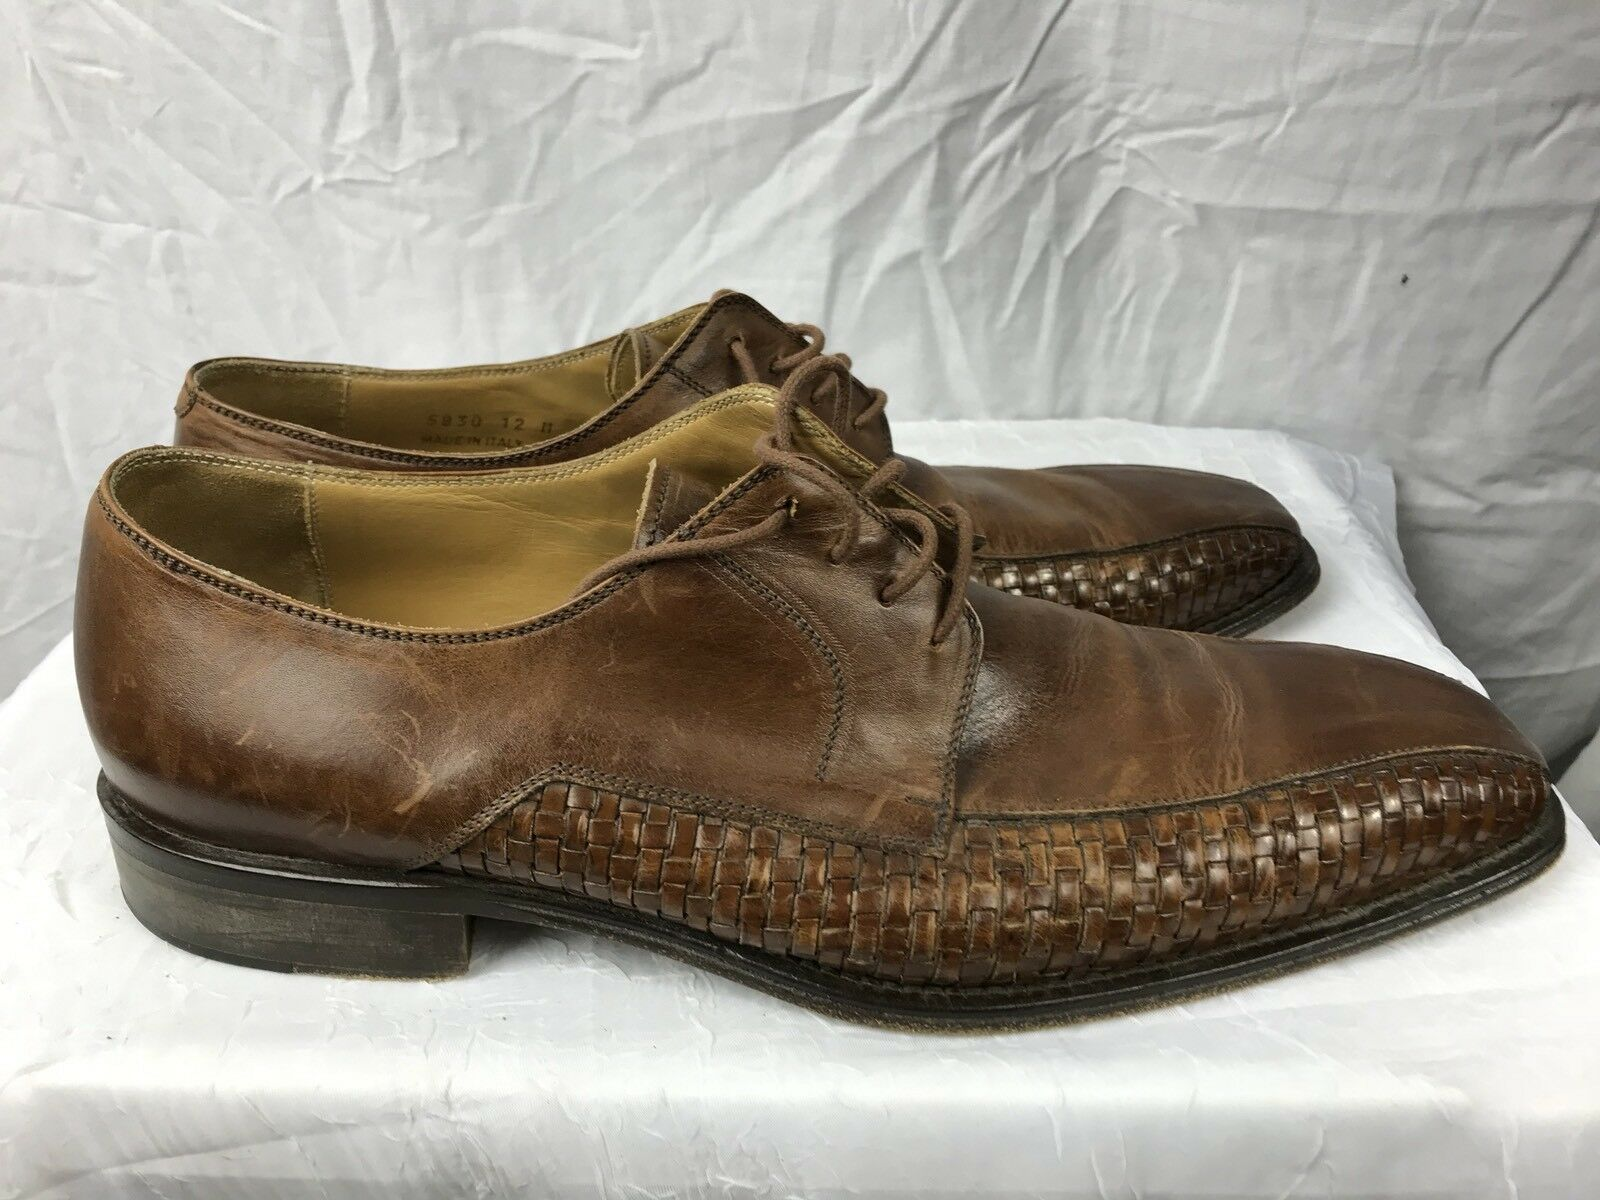 Mercanti Fiorentini Mens 12D Brown Leather Casual Oxford shoes